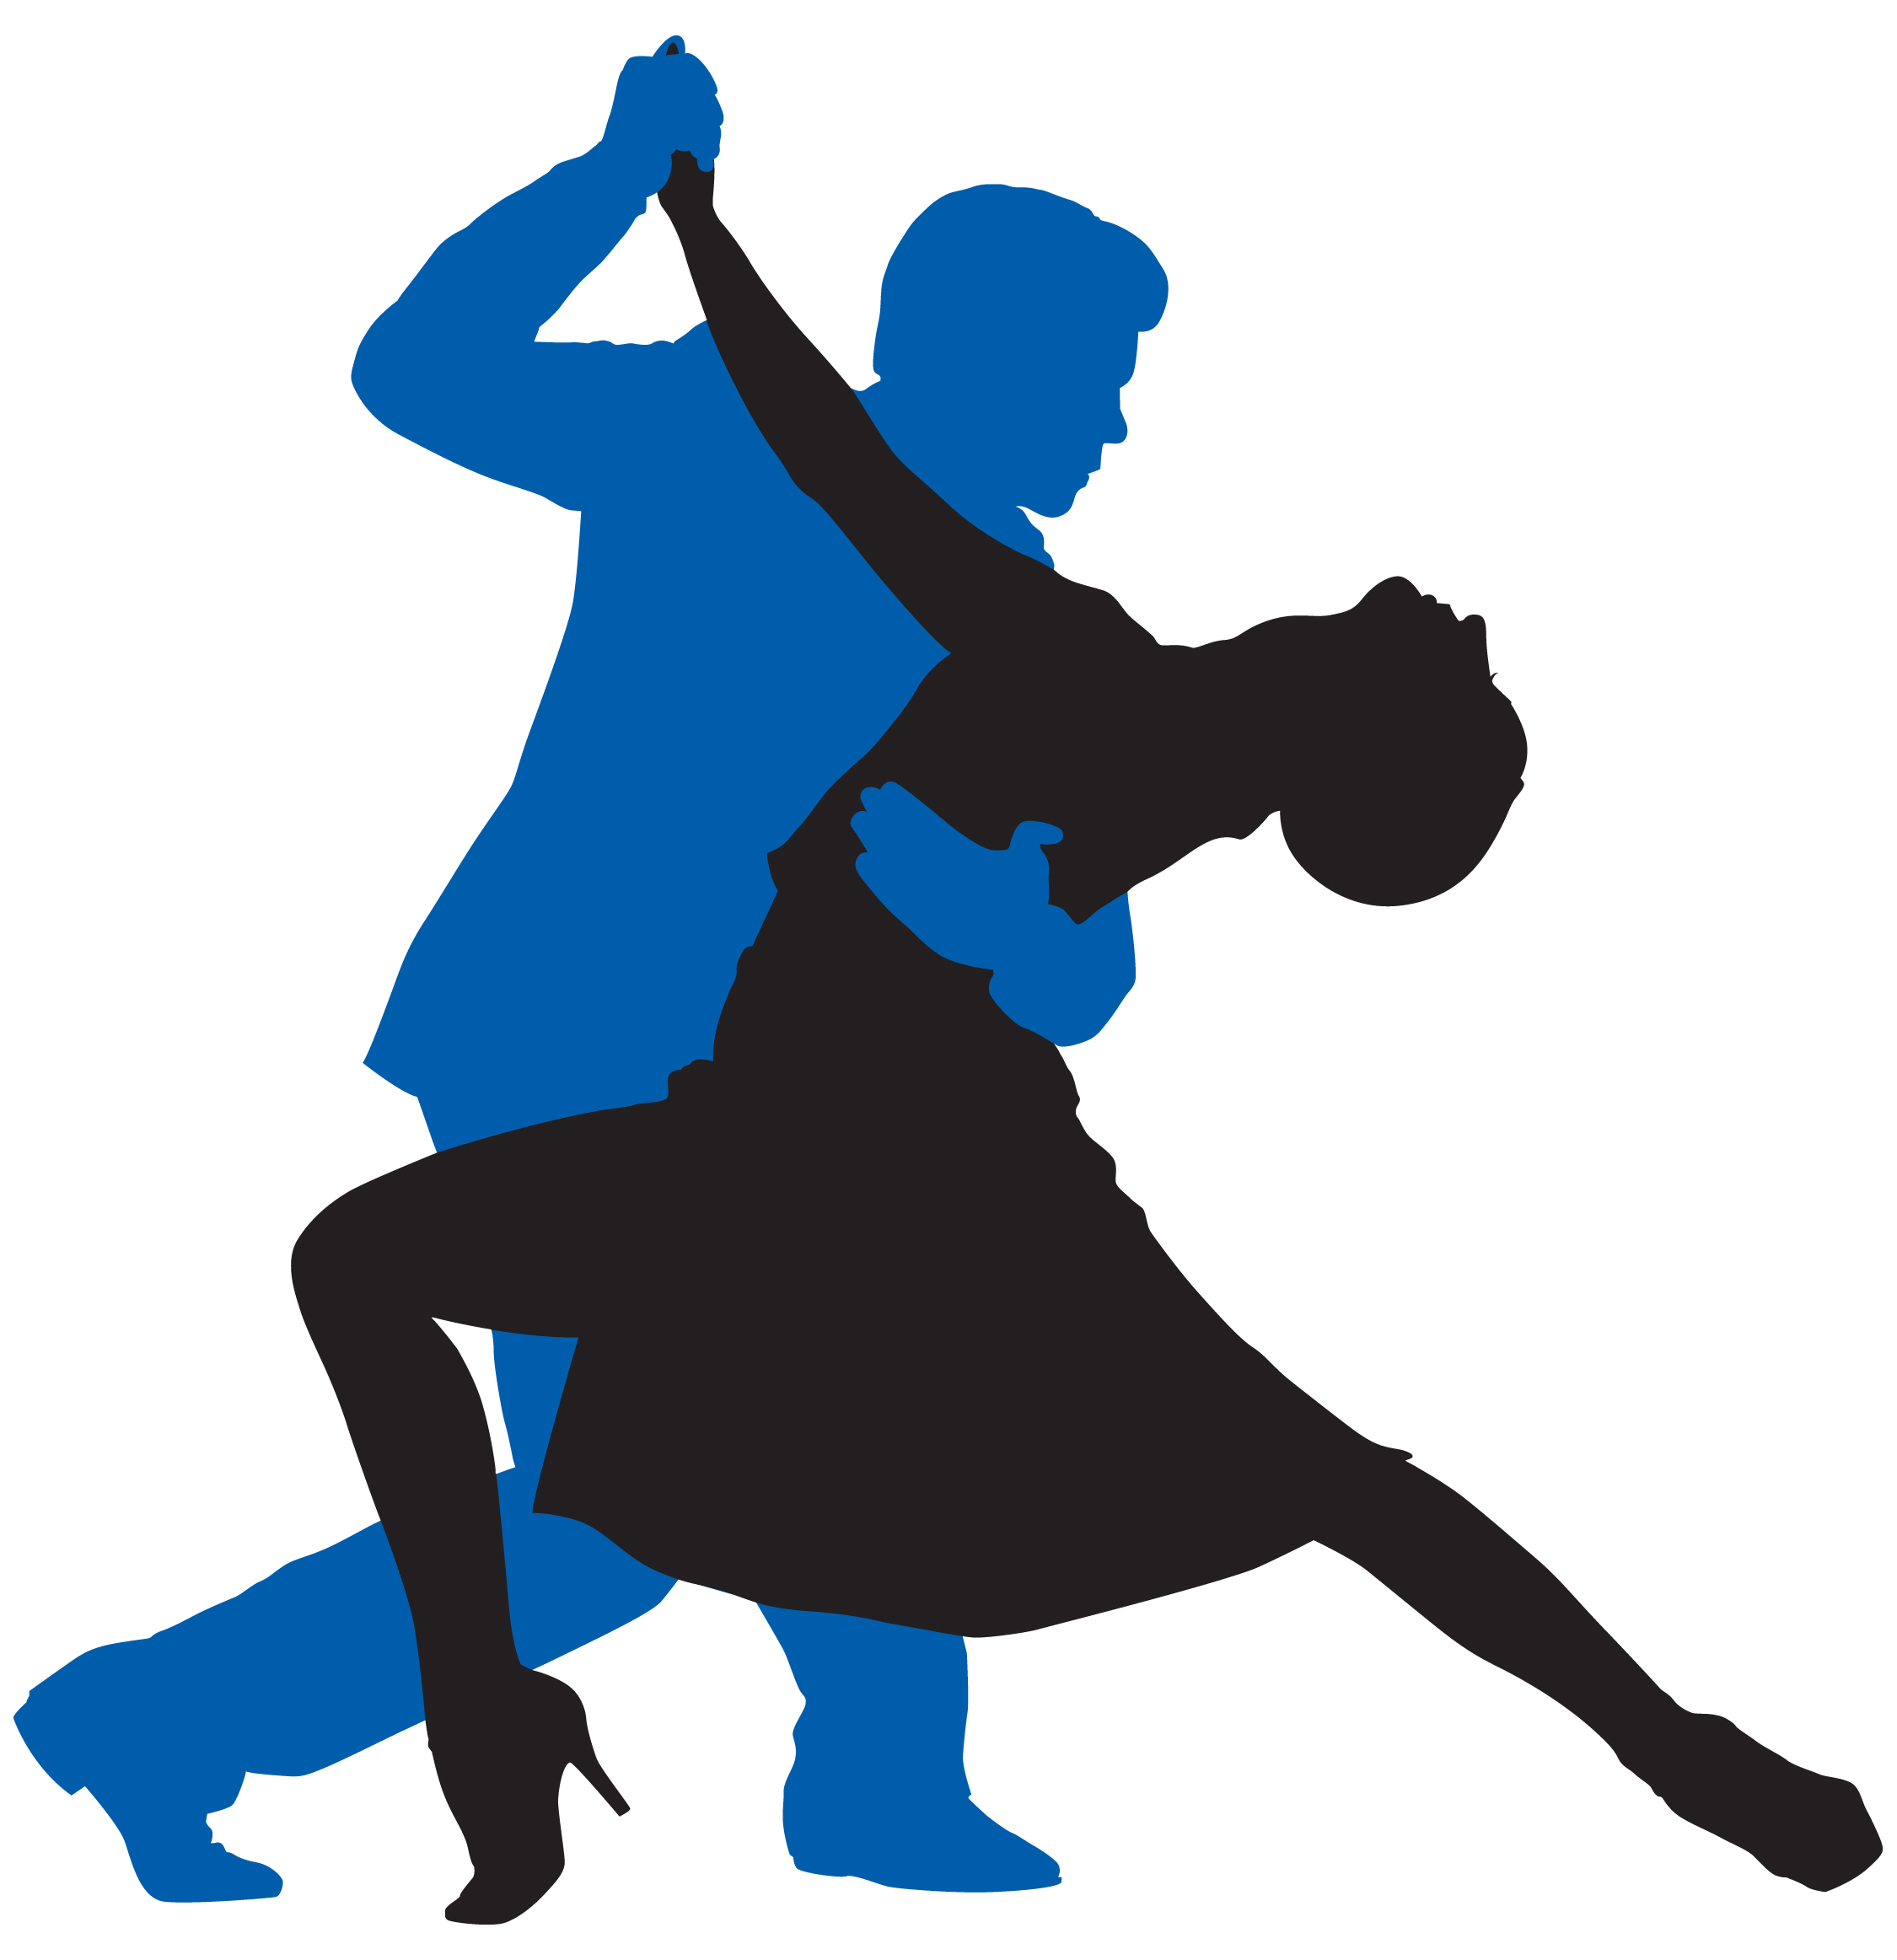 Salsa Dance Etiquette For Leads How To A-Salsa Dance Etiquette For Leads How To Avoid Being Blacklisted When-4